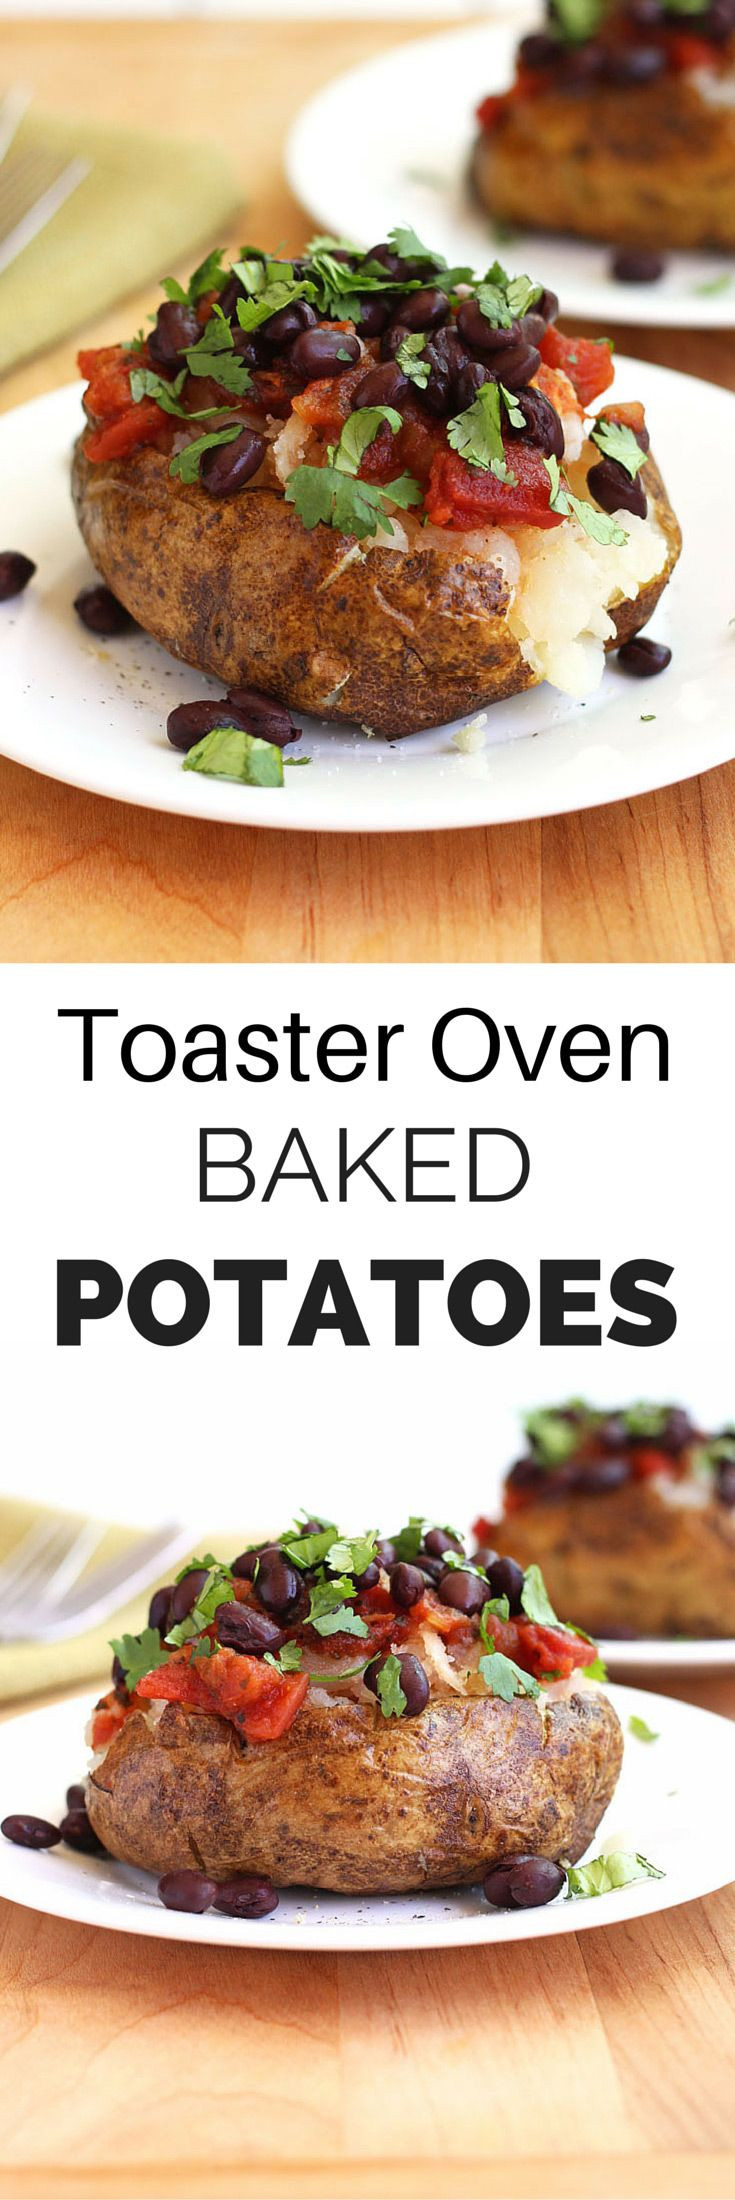 Baked Potato Toaster Oven  How To Toaster Oven Baked Potatoes Recipe